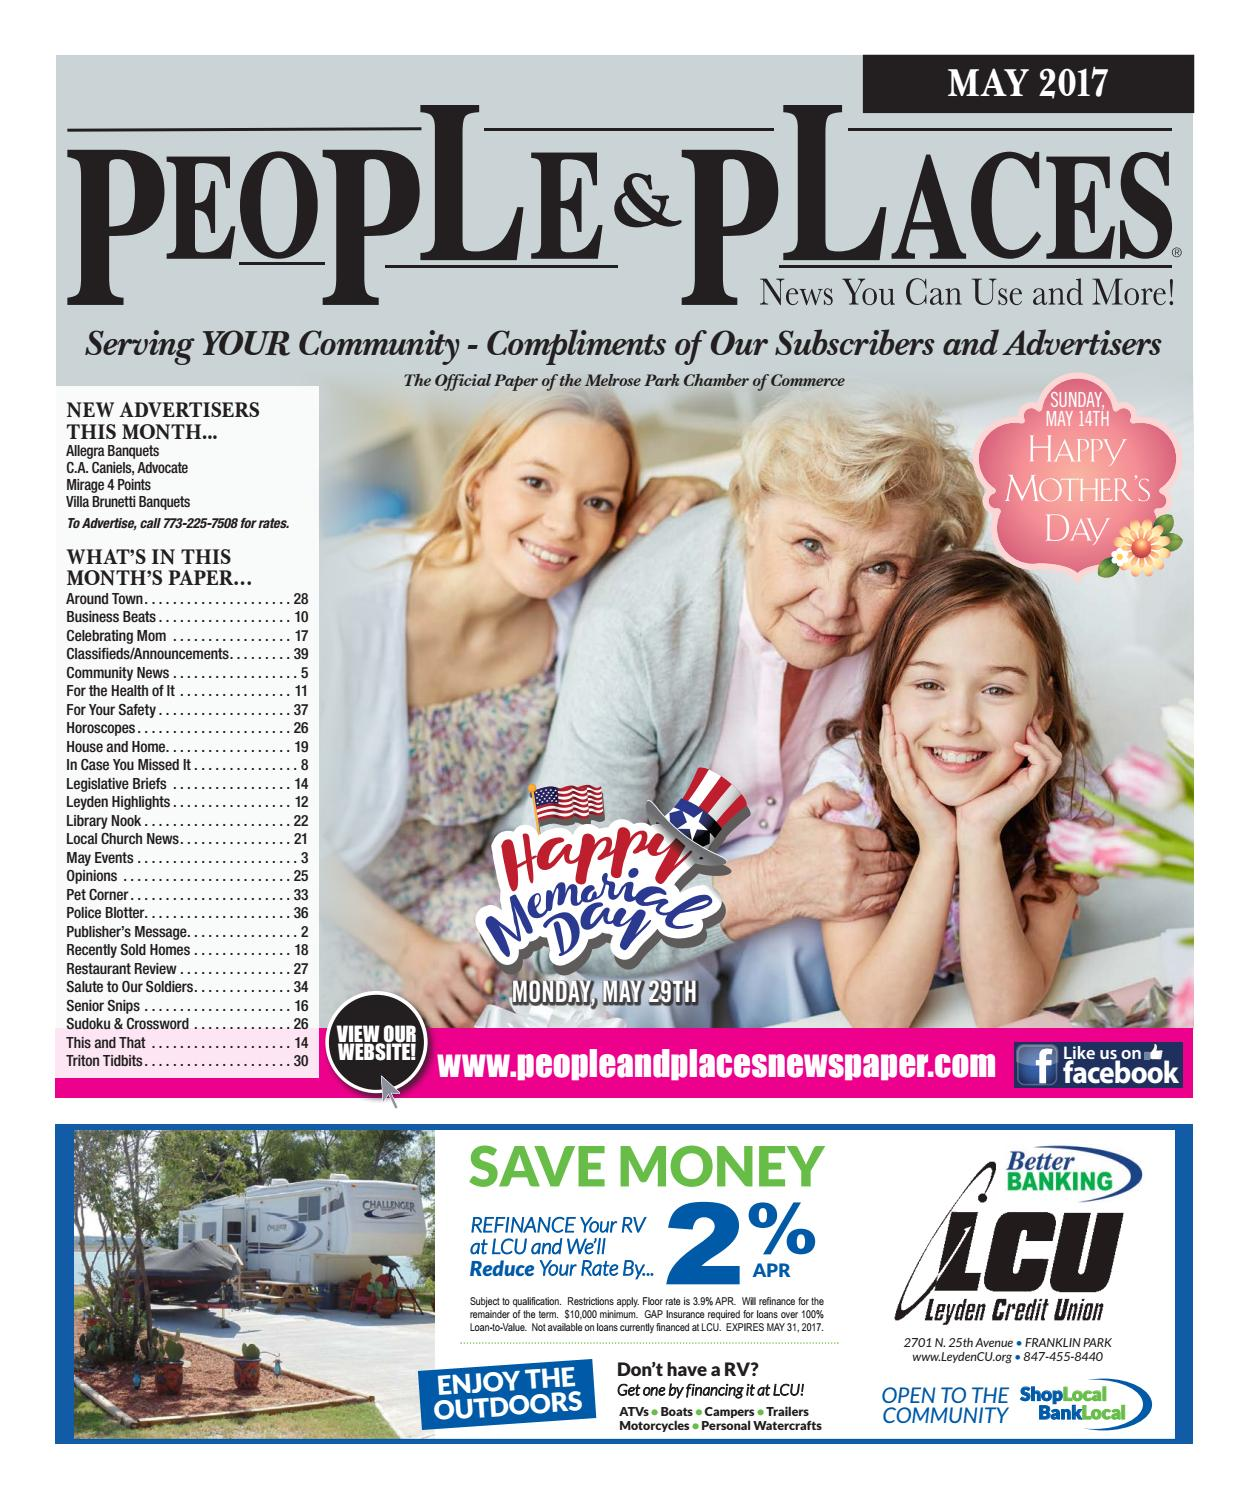 May 2017 People & Places Newspaper by Jennifer Creative - issuu